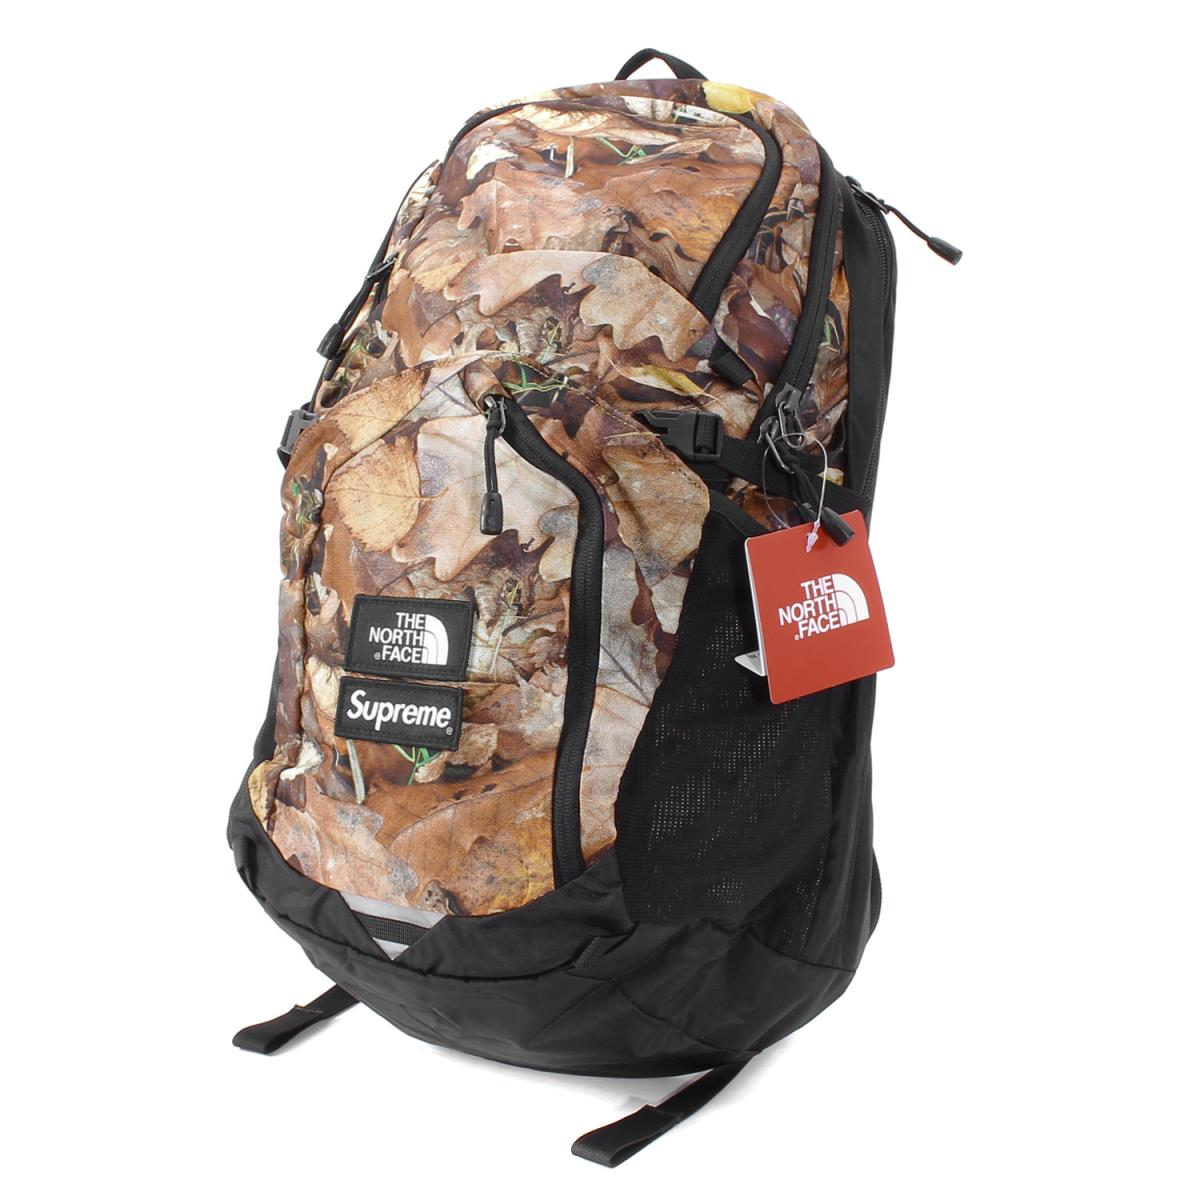 Supreme (シュプリーム) 16A/W ×THE NORTH FACE リーフカモバックパック(Leaves Pocono Backpack) リーフハンティングカモ 【K1675】【あす楽☆対応可】